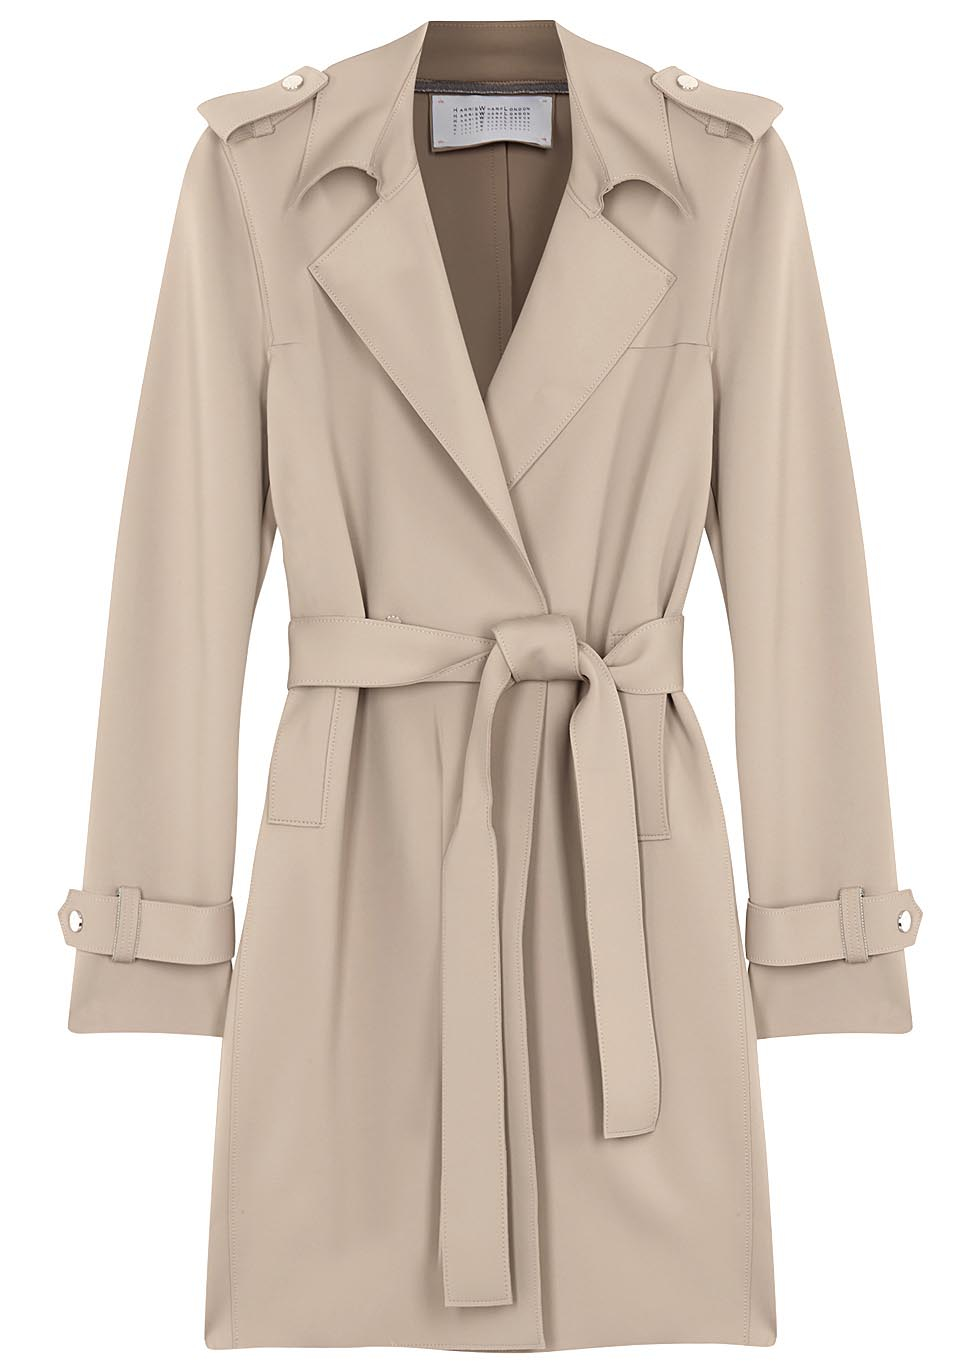 46abe29bc7495 Harris Wharf London Technic Sand Neoprene Trench Coat in Natural - Lyst